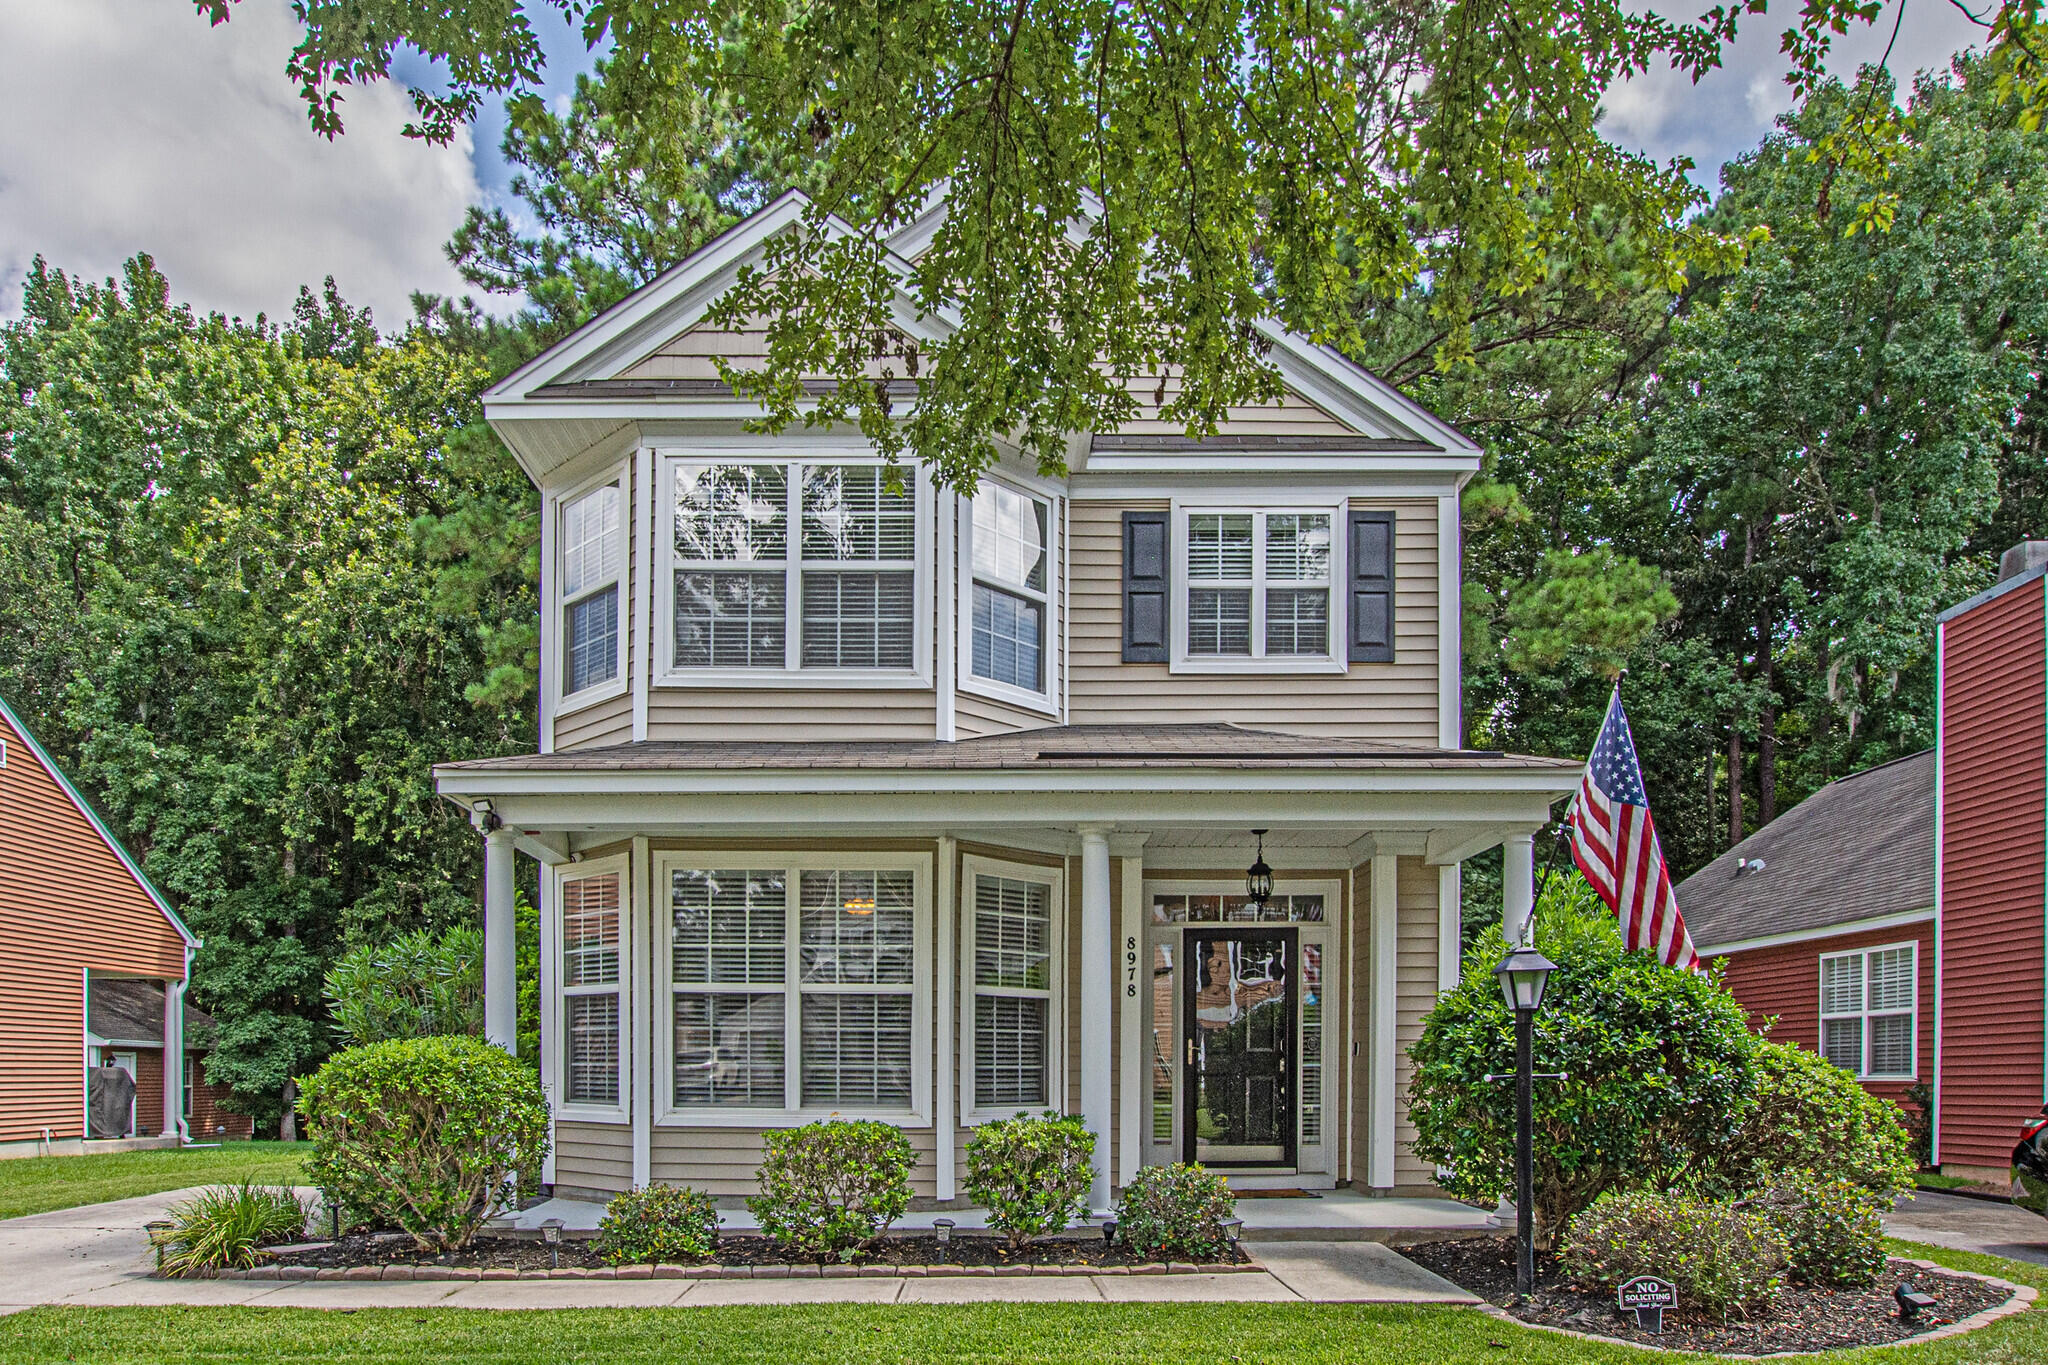 8978 Red Maple Circle, Summerville, 29485, 3 Bedrooms Bedrooms, ,2 BathroomsBathrooms,For Sale,Red Maple,21019805